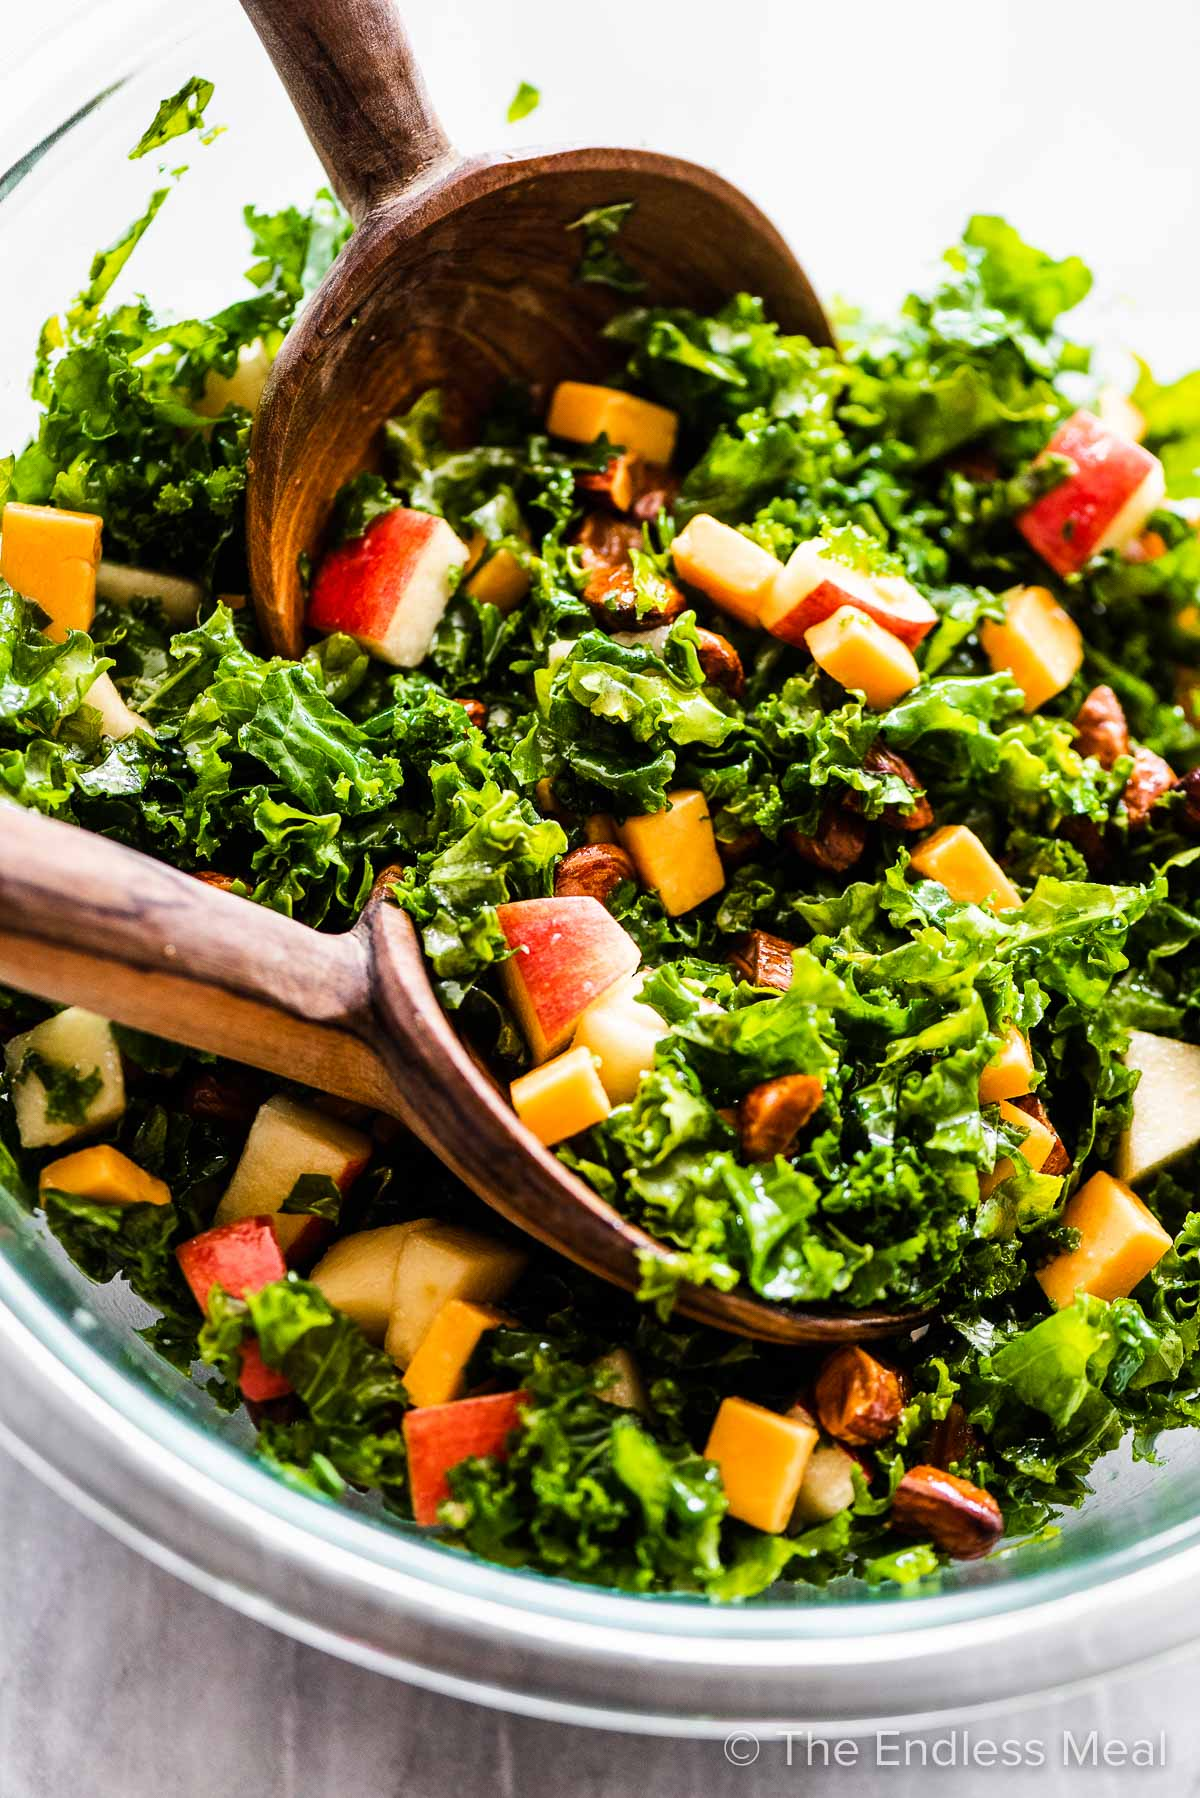 A close up of kale apple salad in a glass bowl with wooden salad tongs.